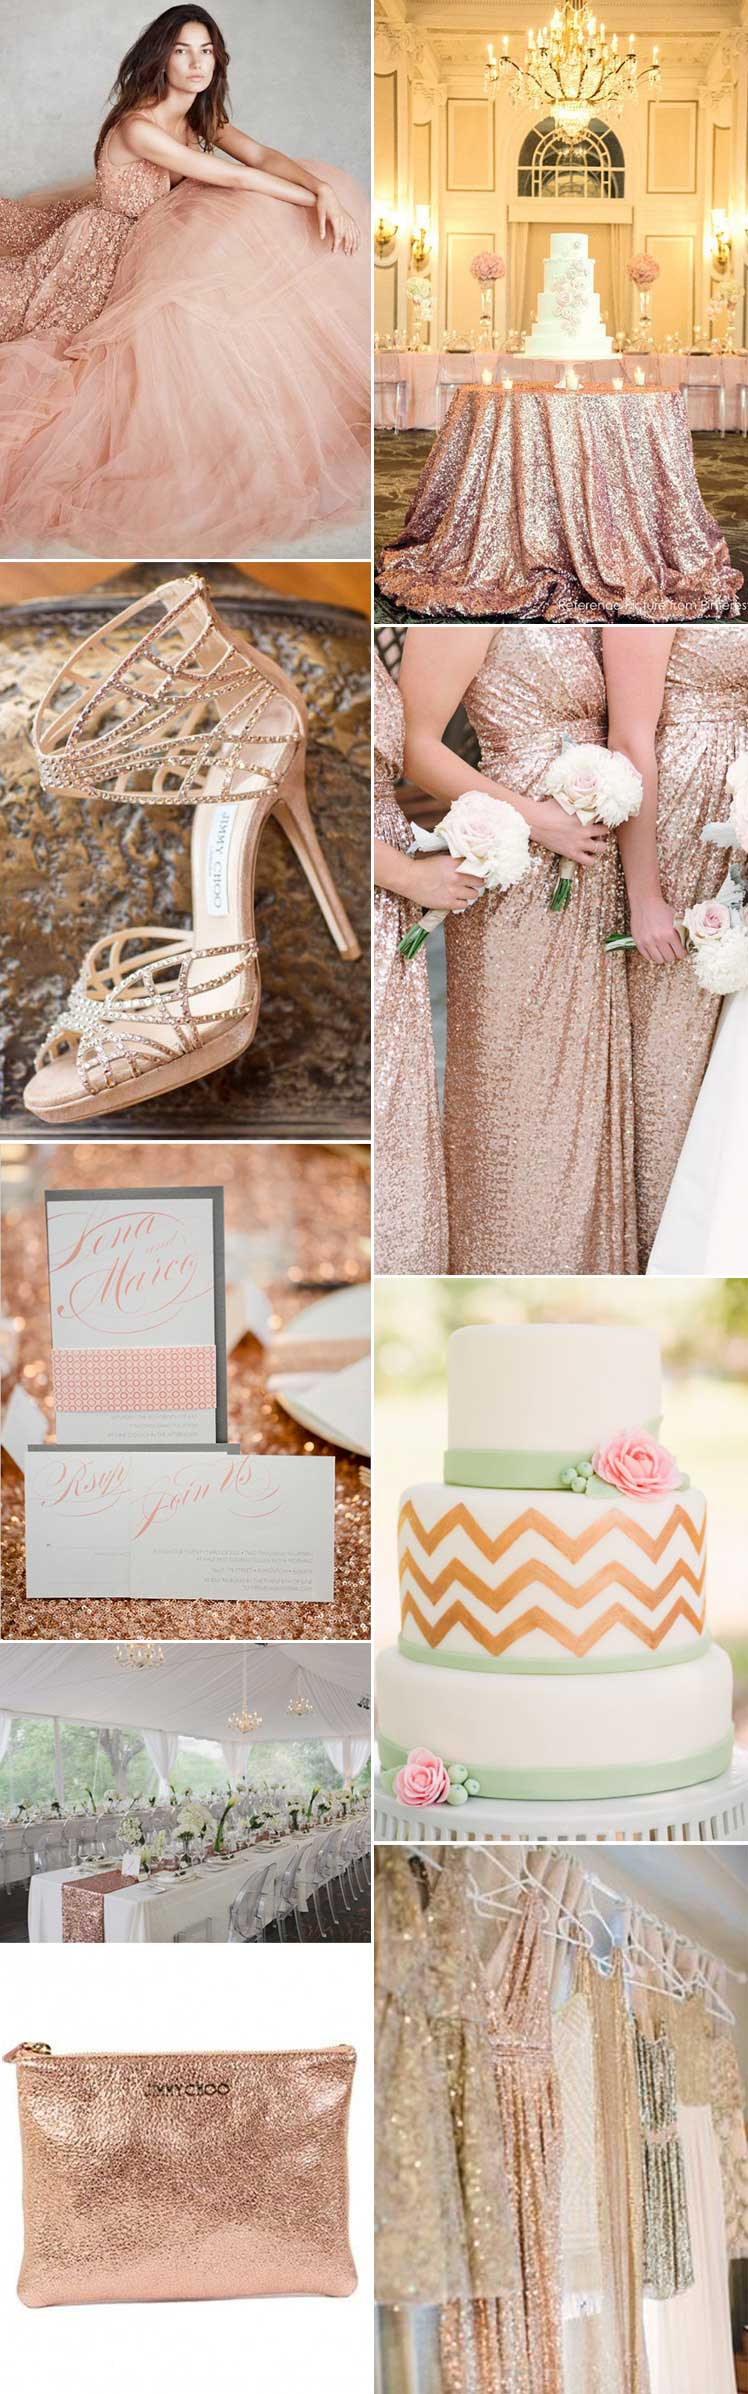 Romantic and pretty rose gold wedding ideas